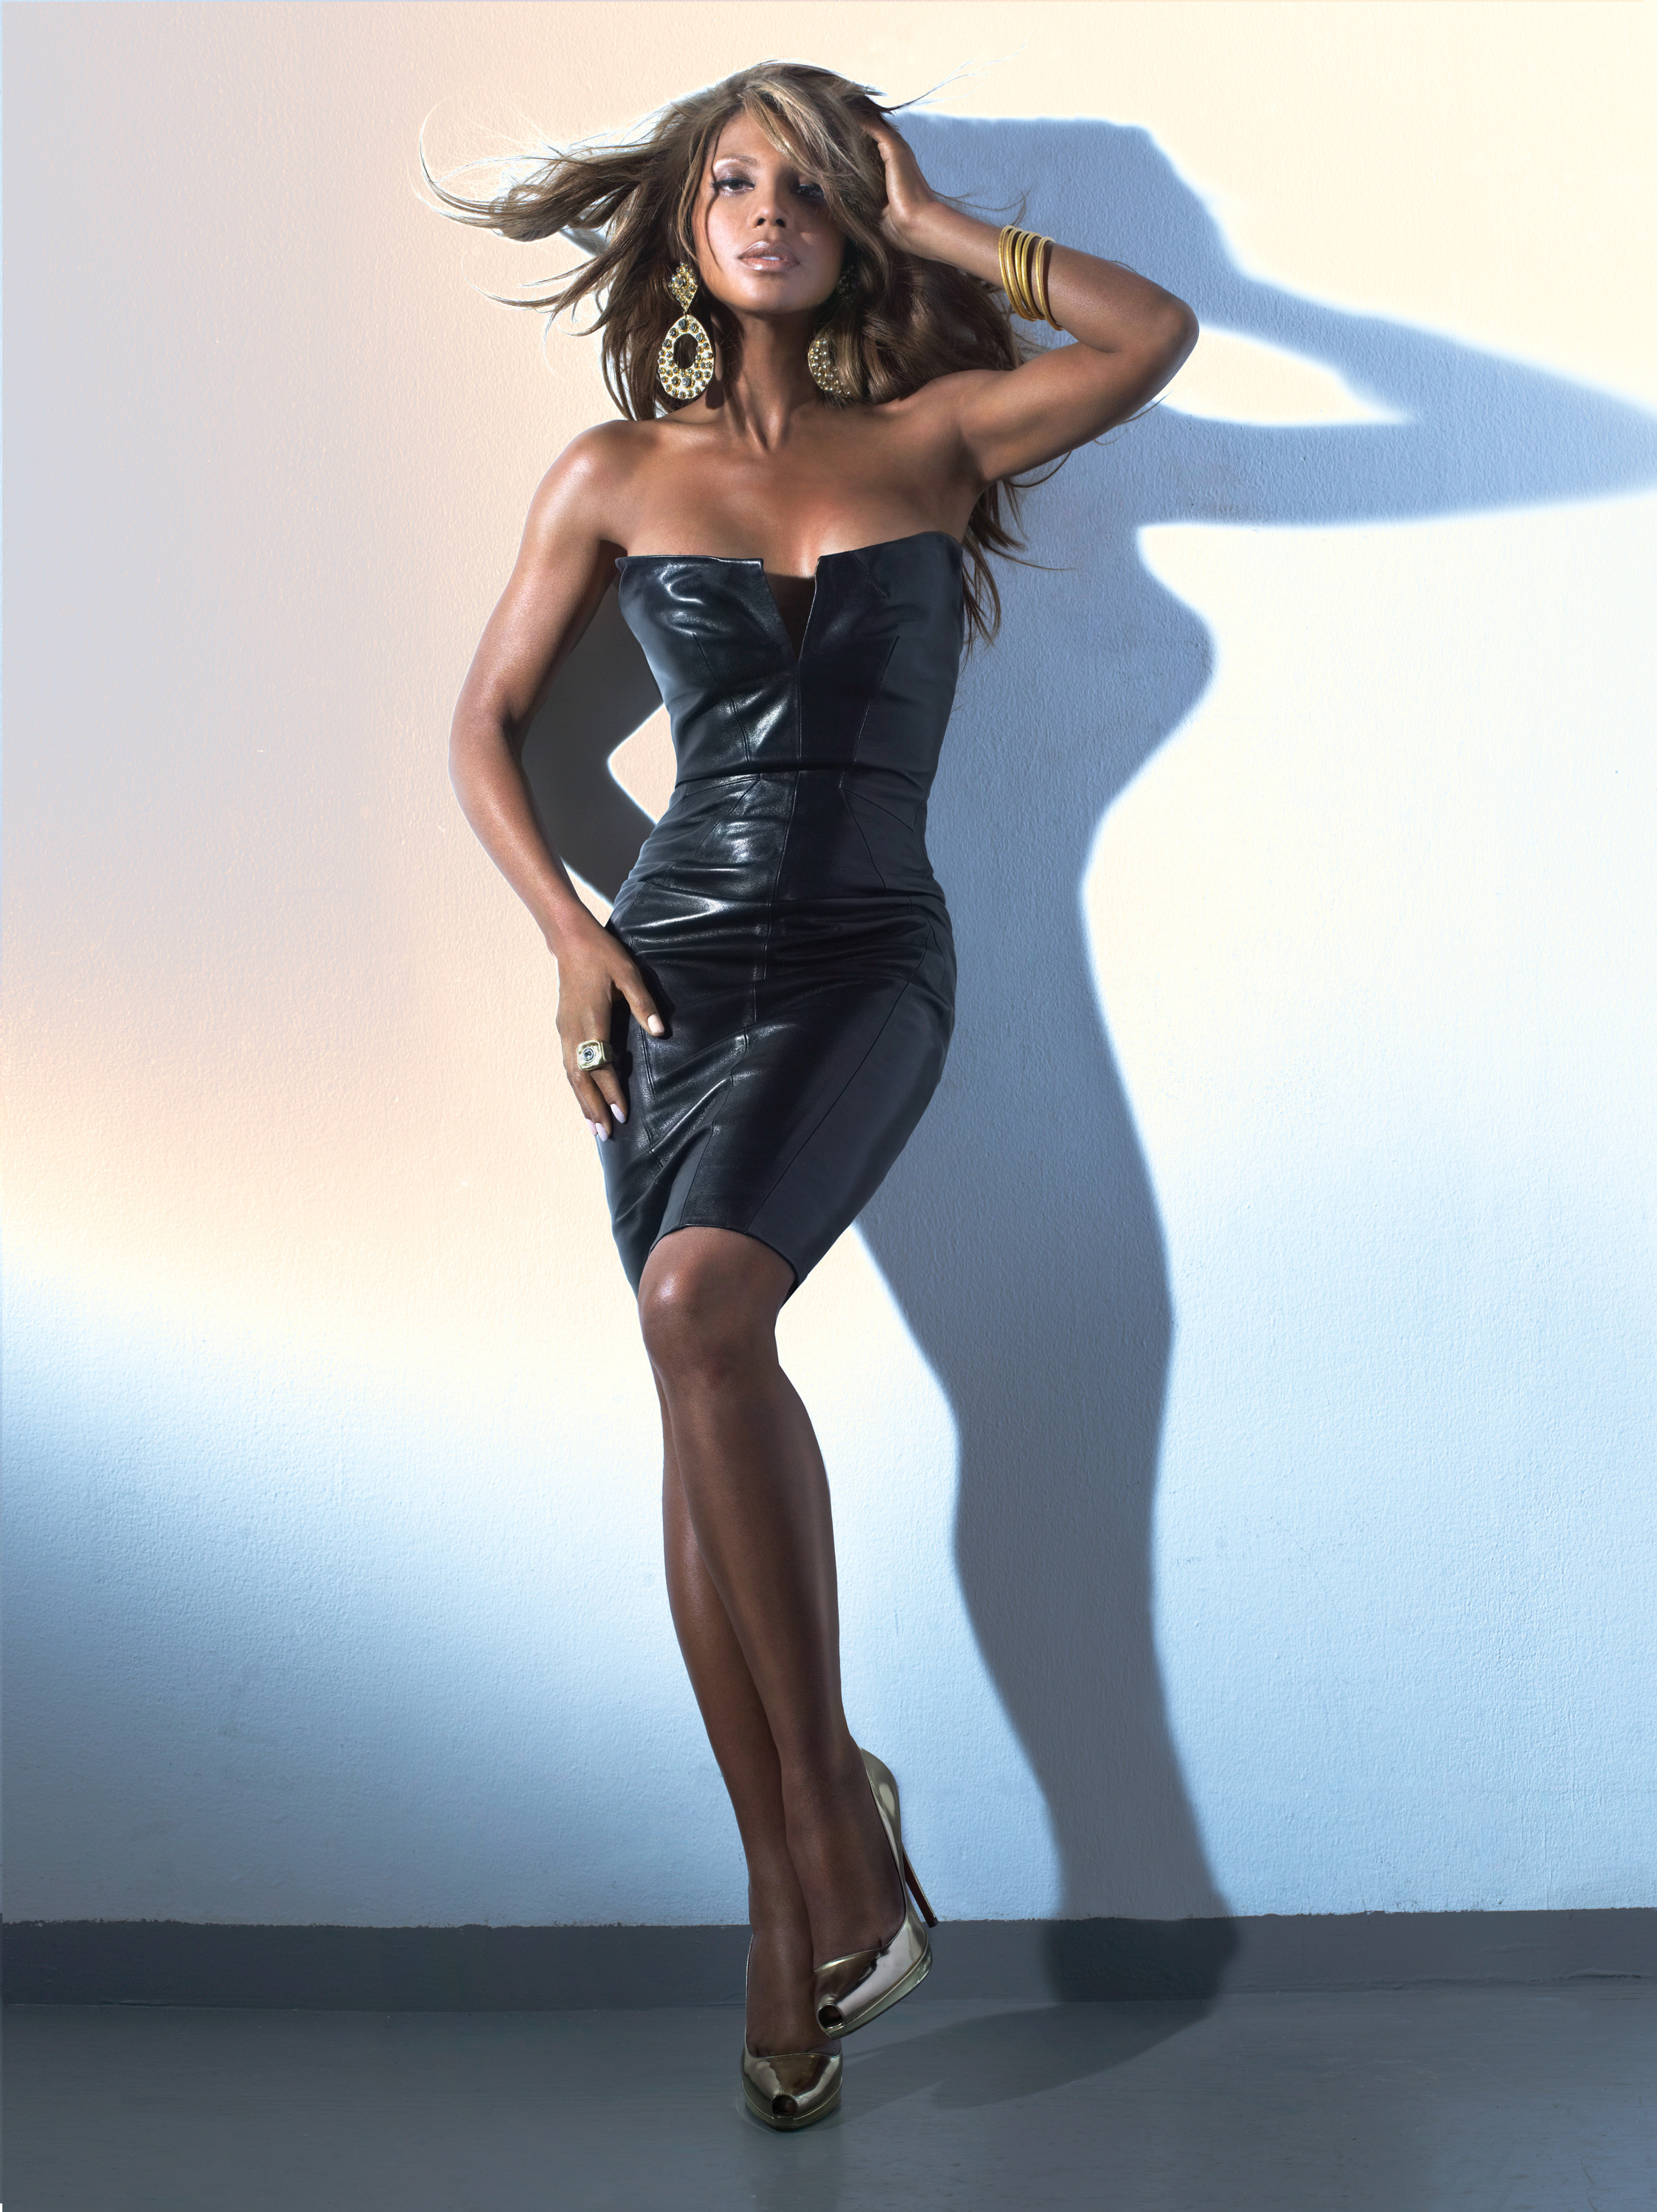 http://www.theplace2.ru/archive/toni_braxton/img/9-17.jpg